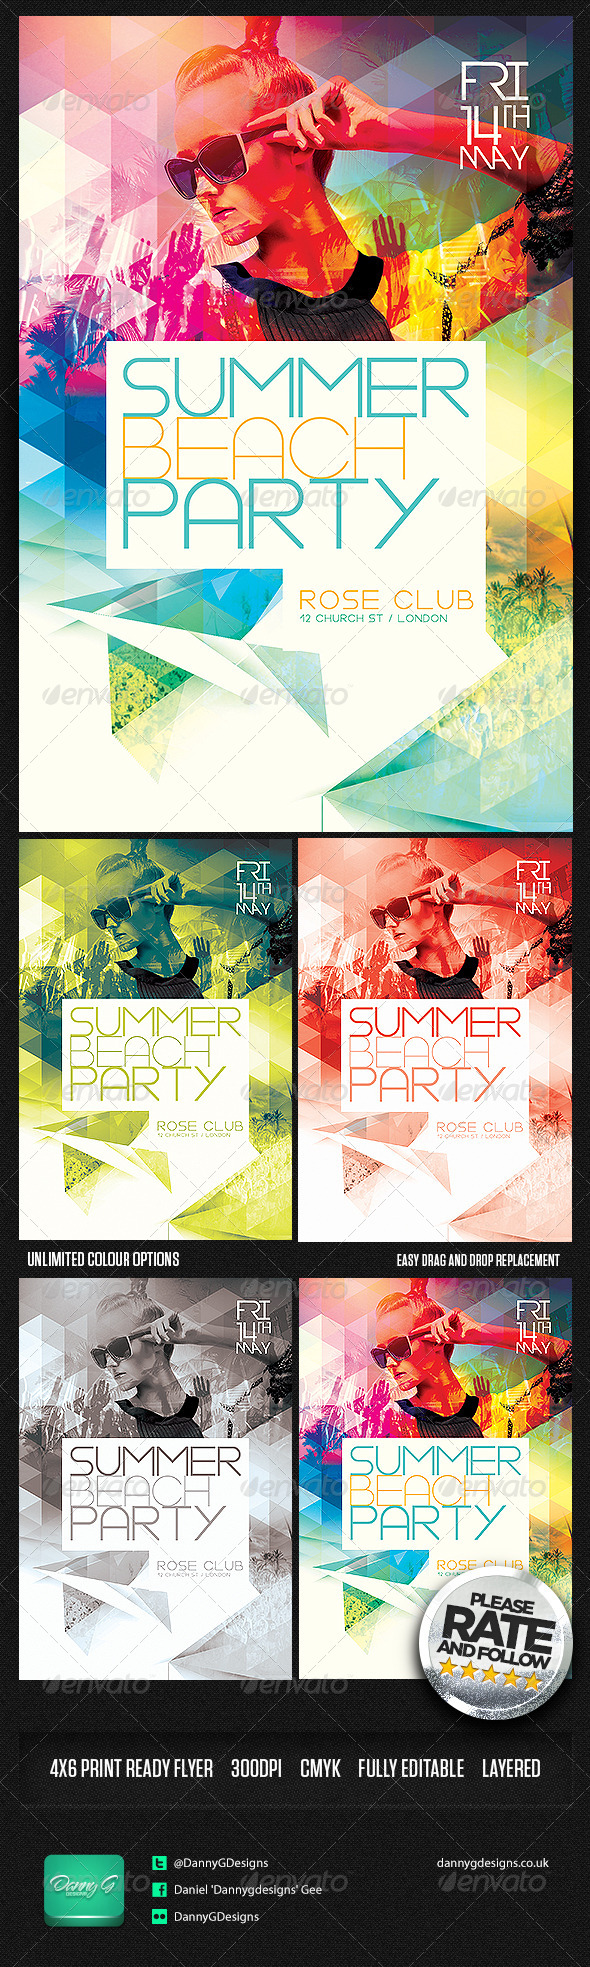 GraphicRiver Summer Beach Party Flyer Template PSD 7941843